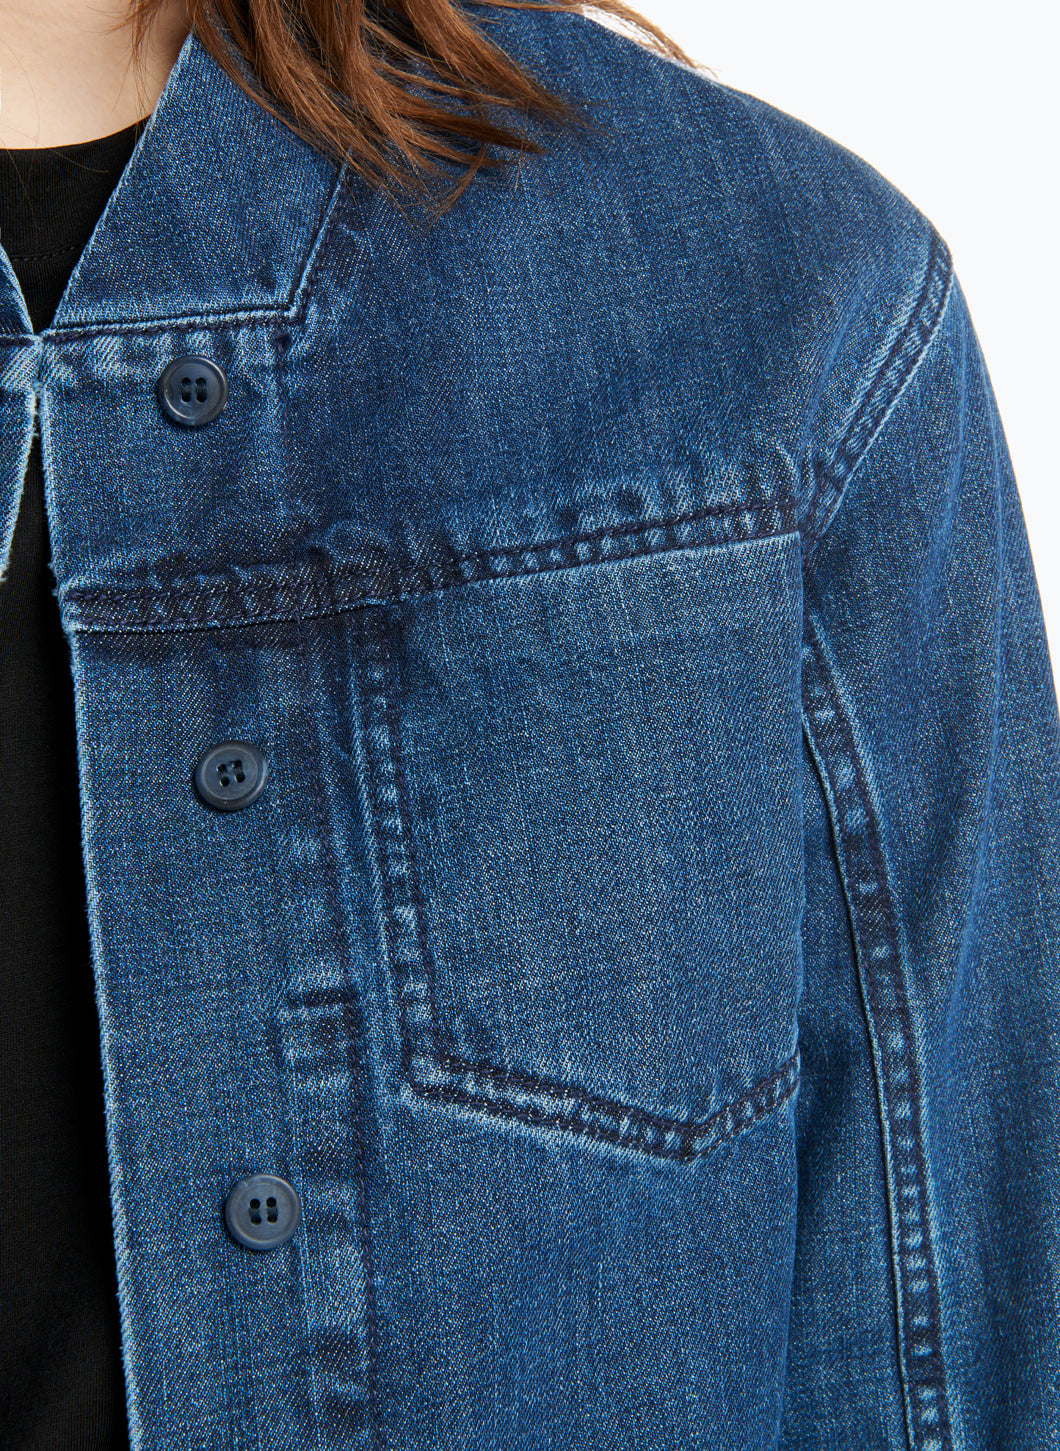 False Collar Jacket in Stoned Denim